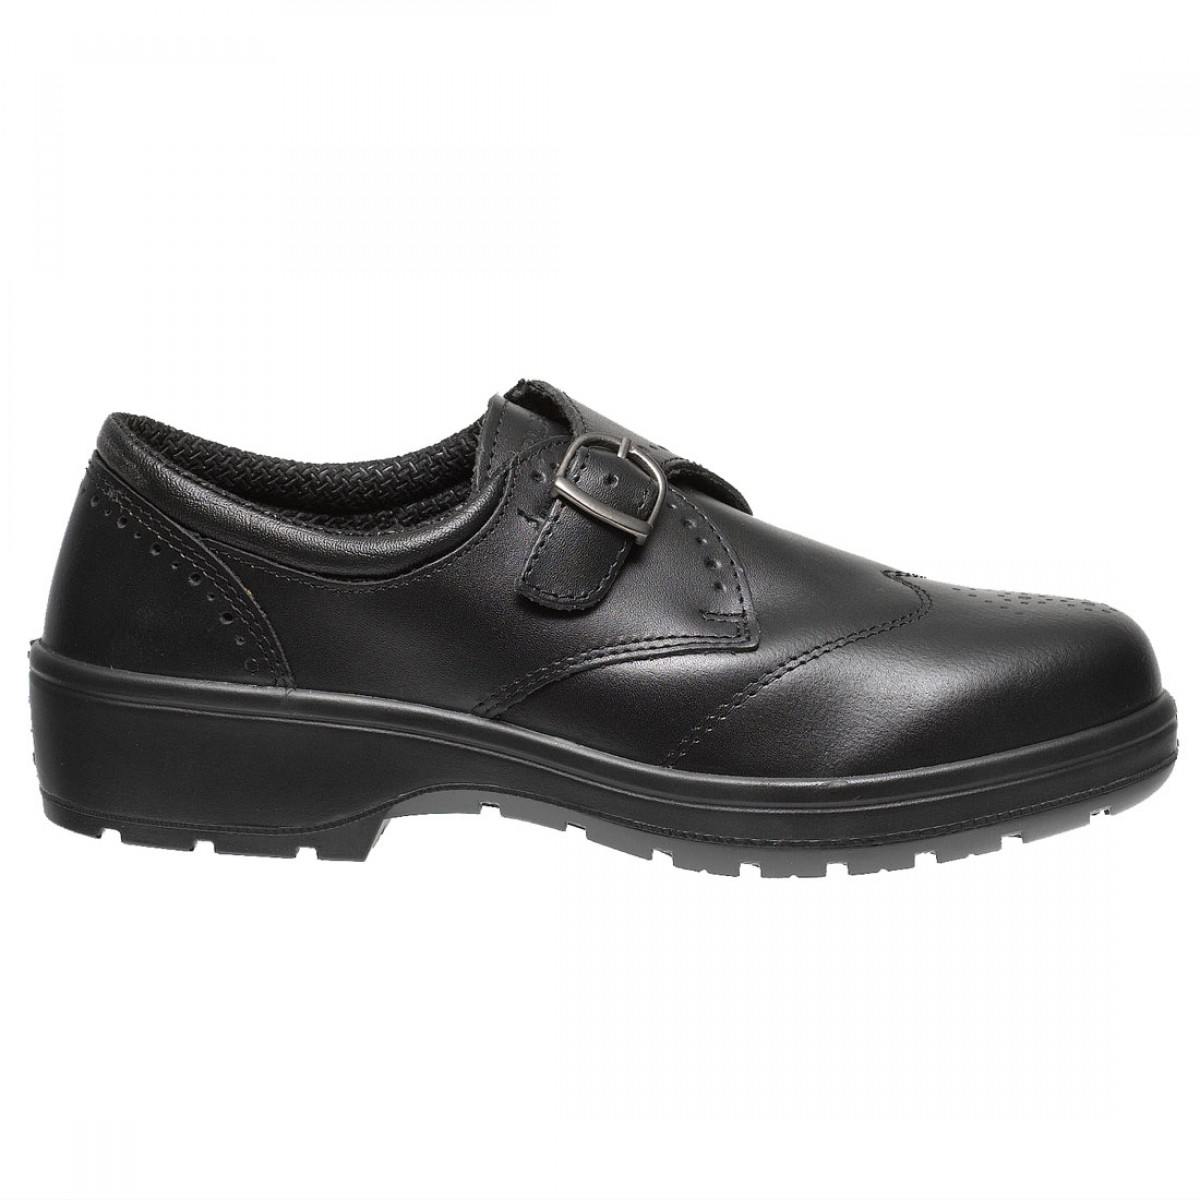 Dolby Smart Executive Ladies Black Leather Slip On Brogue Safety Shoes